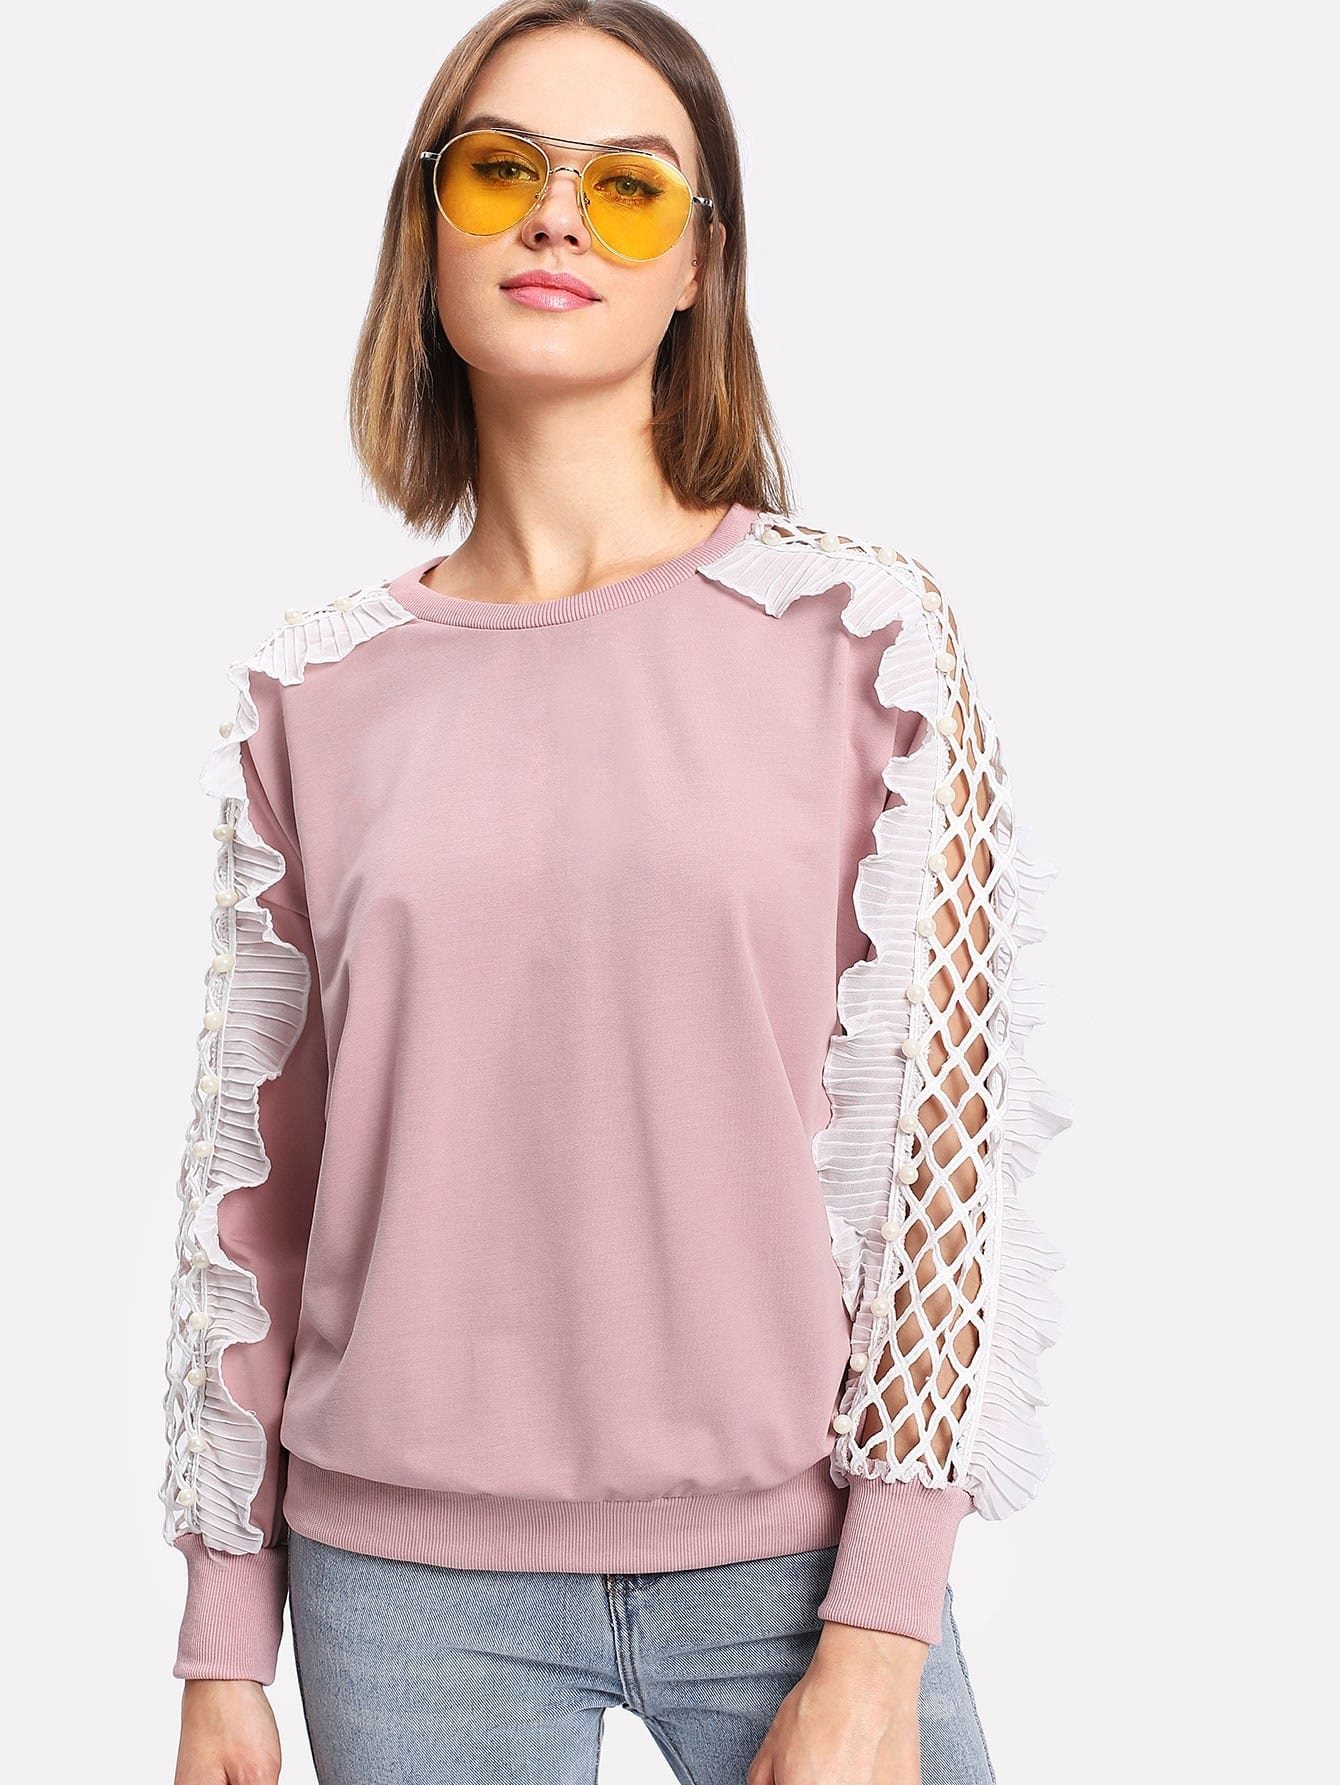 Faux Pearl Detail Ruffle Contrast Sweatshirt frill layered pearl detail sweatshirt dress